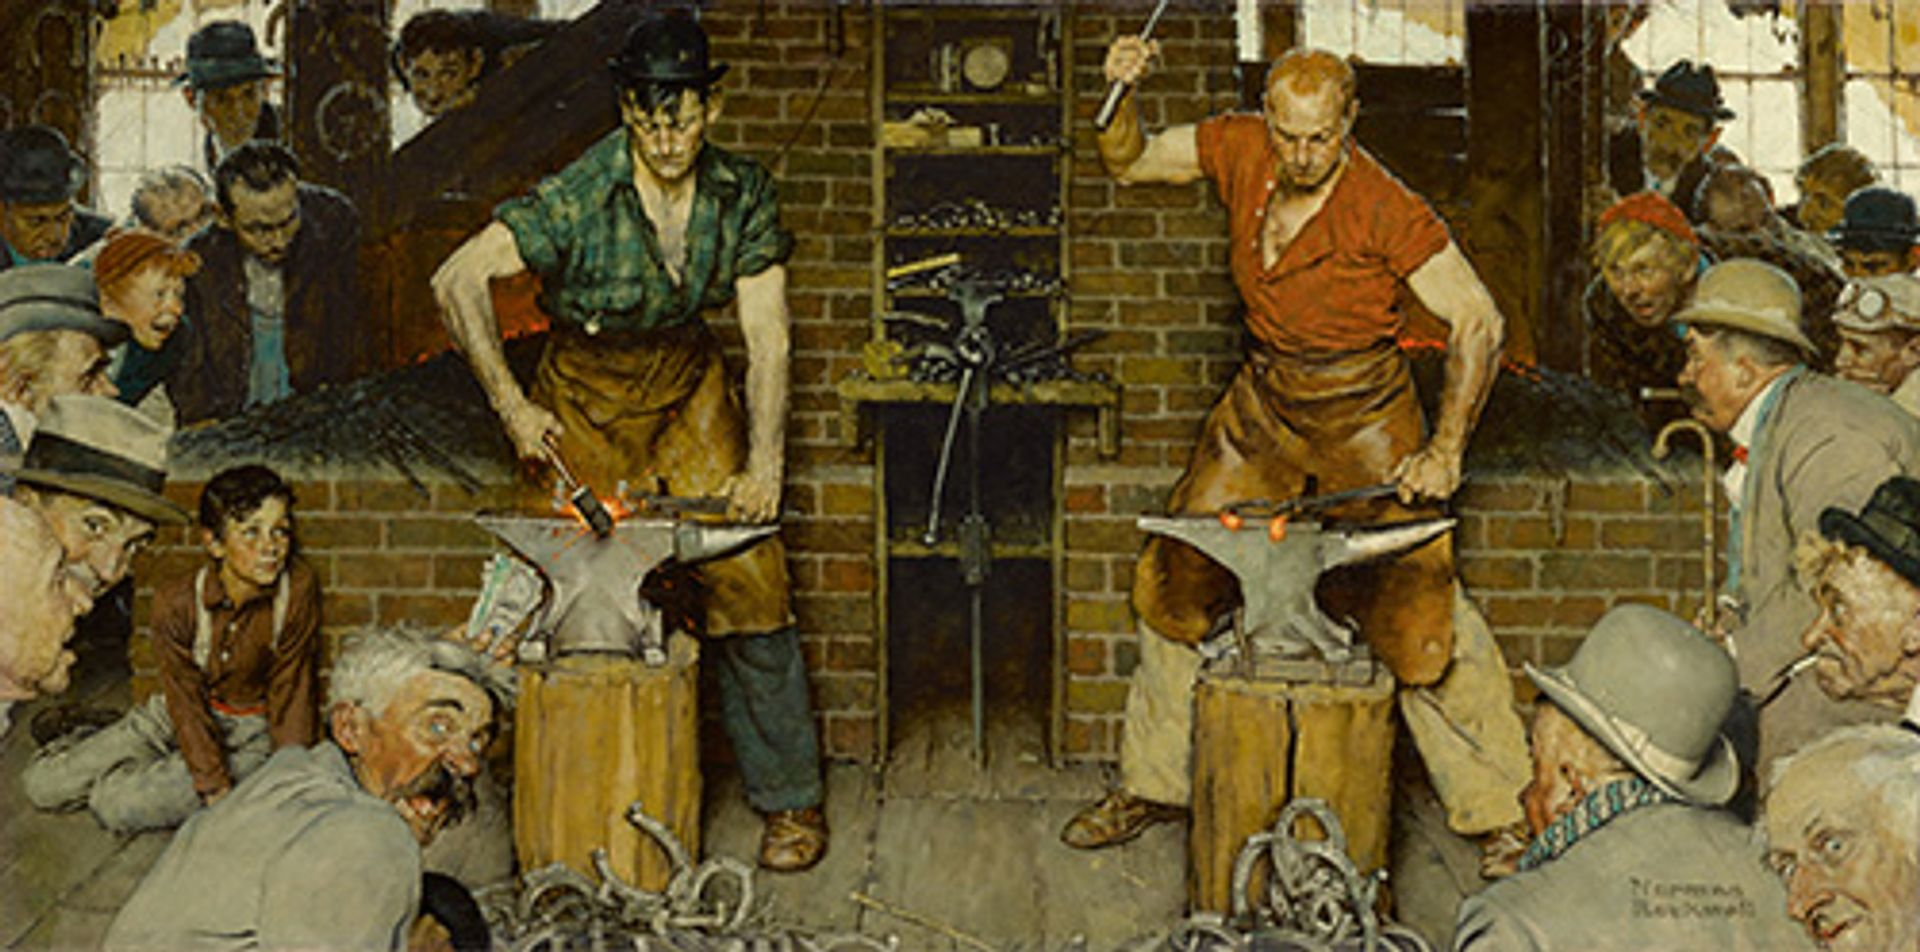 """Norman Rockwell, Blacksmith's Boy – Heel And Toe (Shaftsbury Blacksmith Shop; """"I'll Never Forget That Last Hour. and never, i imagine, will any of those who watched. Both Men Were Lost To Everything Now But The Swing From The Forge To The Anvil, The Heels To Be Turned And The Toes To Be Welded.""""), 1940 sold for $8.1m (est $7m-$10m) SEPS licensed by Curtis Licensing Indianapolis, IN. All rights reserved and courtesy of Sotheby's"""